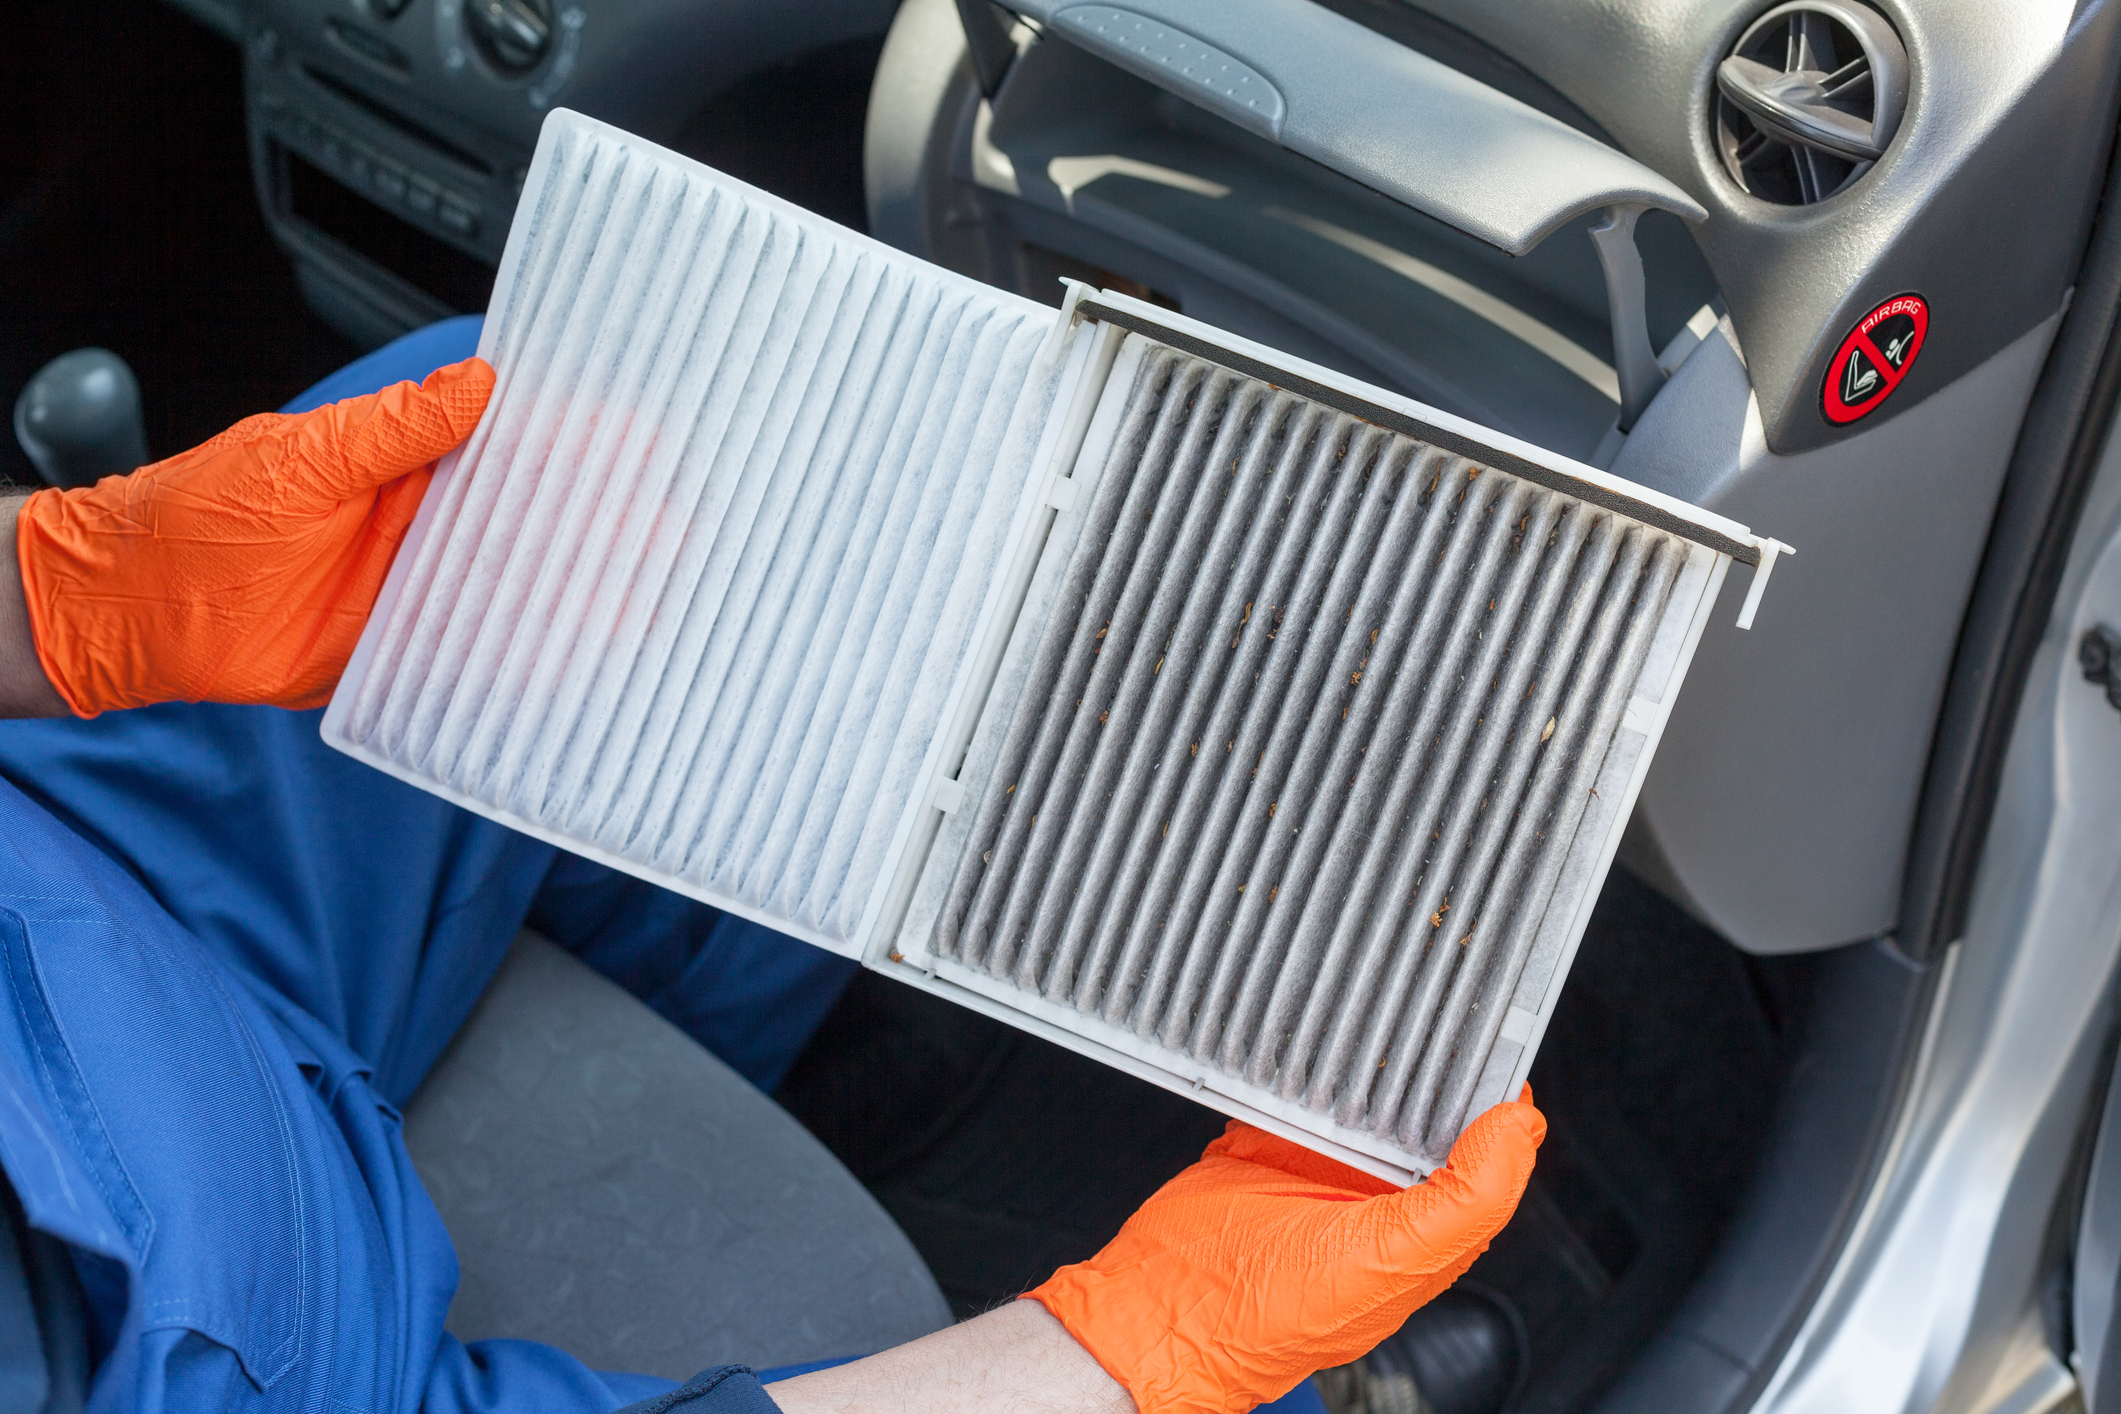 Cabin Air Filter Replacement near Houston, TX